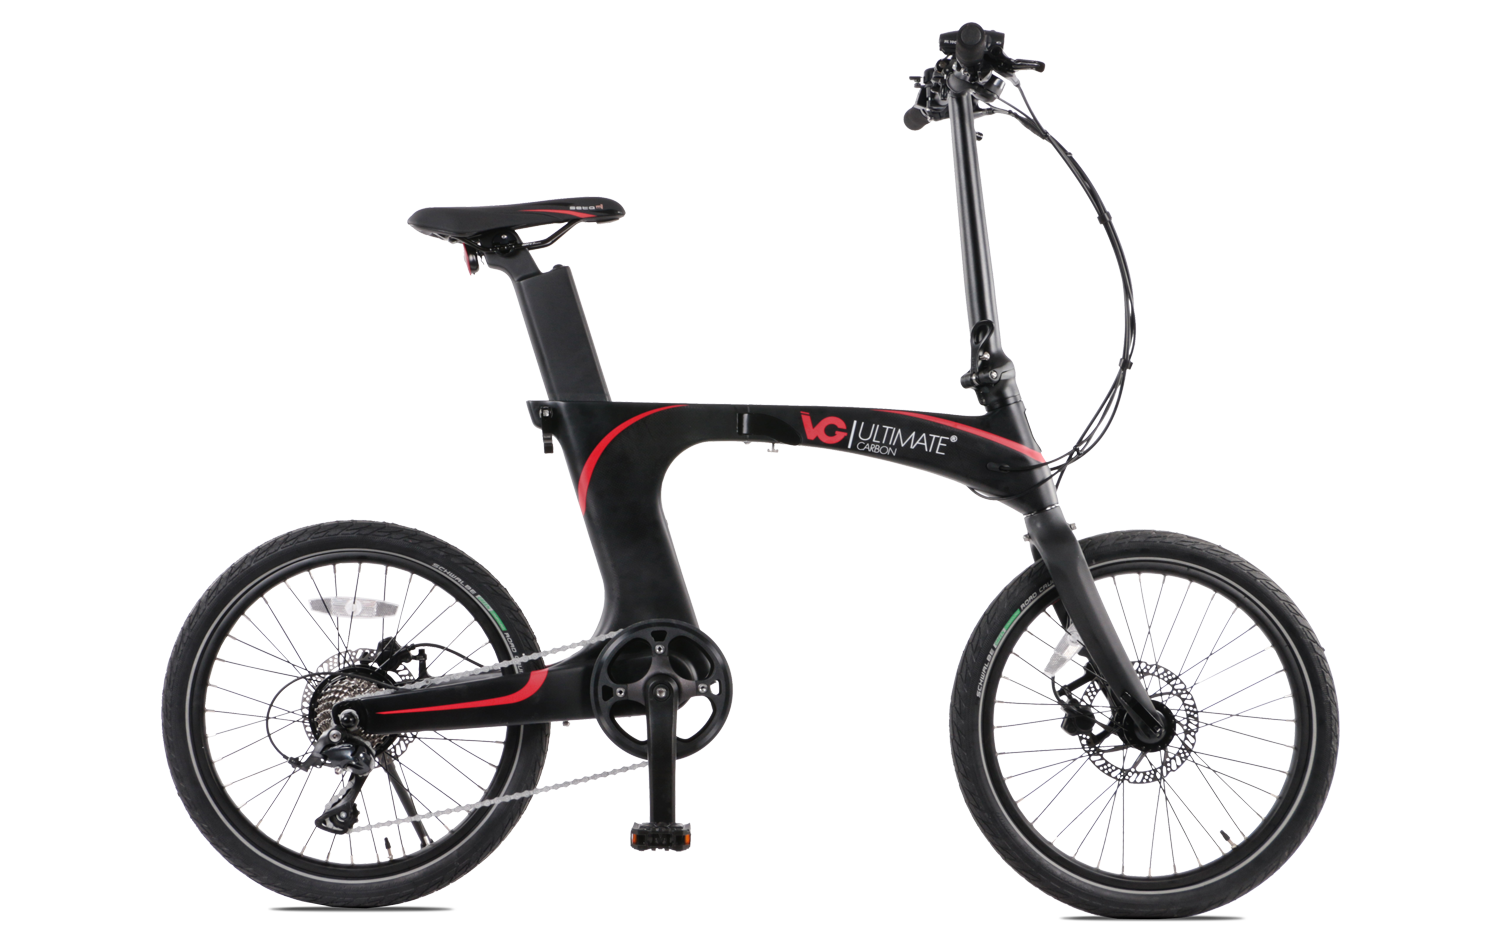 https://w8w5m3f8.stackpathcdn.com/18343/velo-electrique-pliant-vg-bikes-ultimate-carbon-378wh.jpg